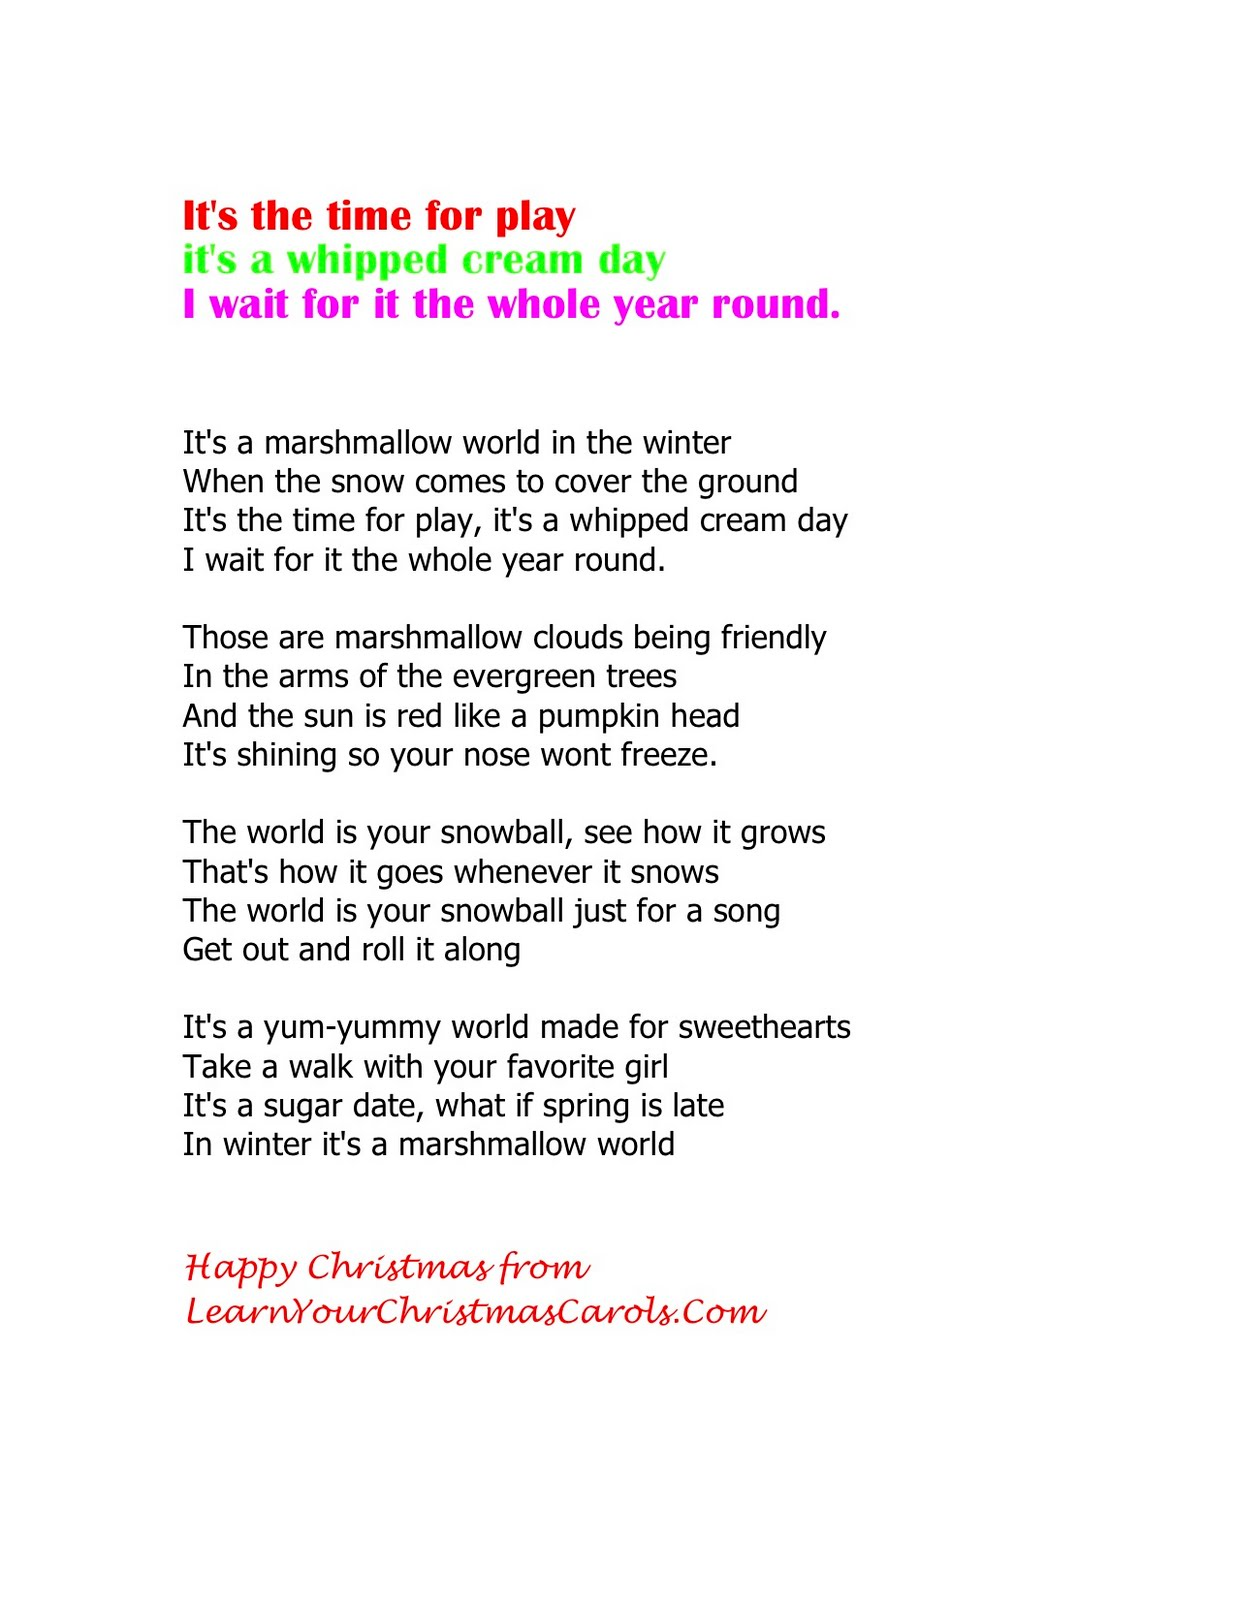 Learn Your Christmas Carols: A Marshmallow World - Lyrics, Video ...